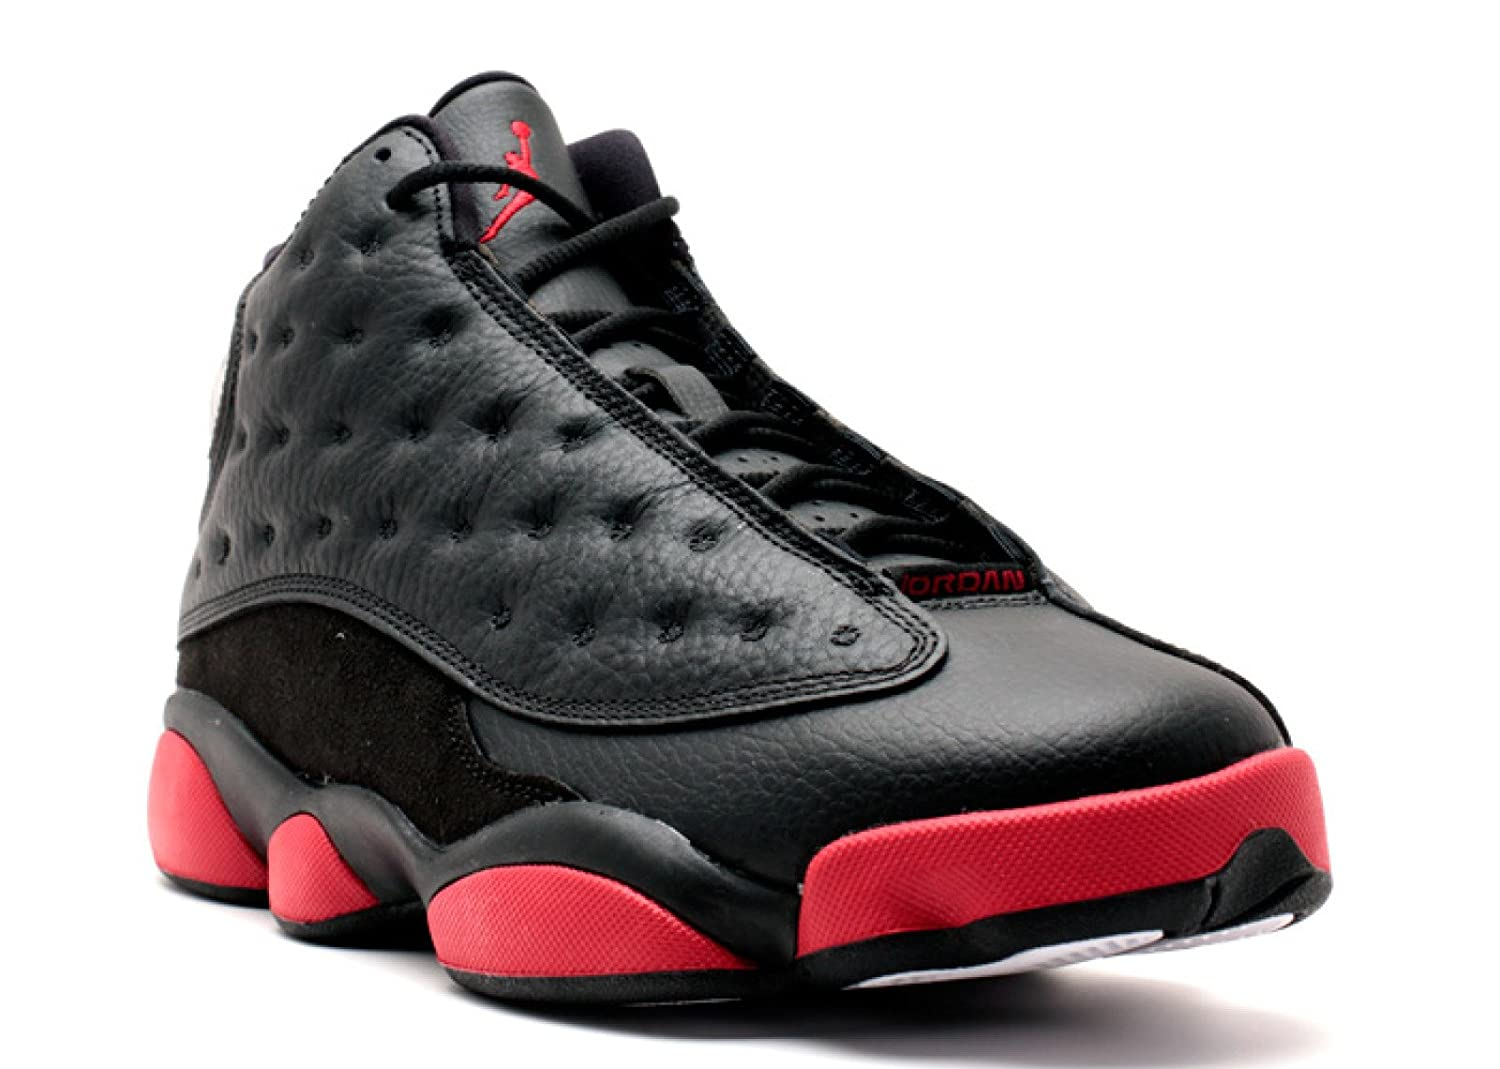 brand new cf9c5 28e0d Jordan Air 13 Retro Men's Shoes Black/Gym Red-Black 414571-003